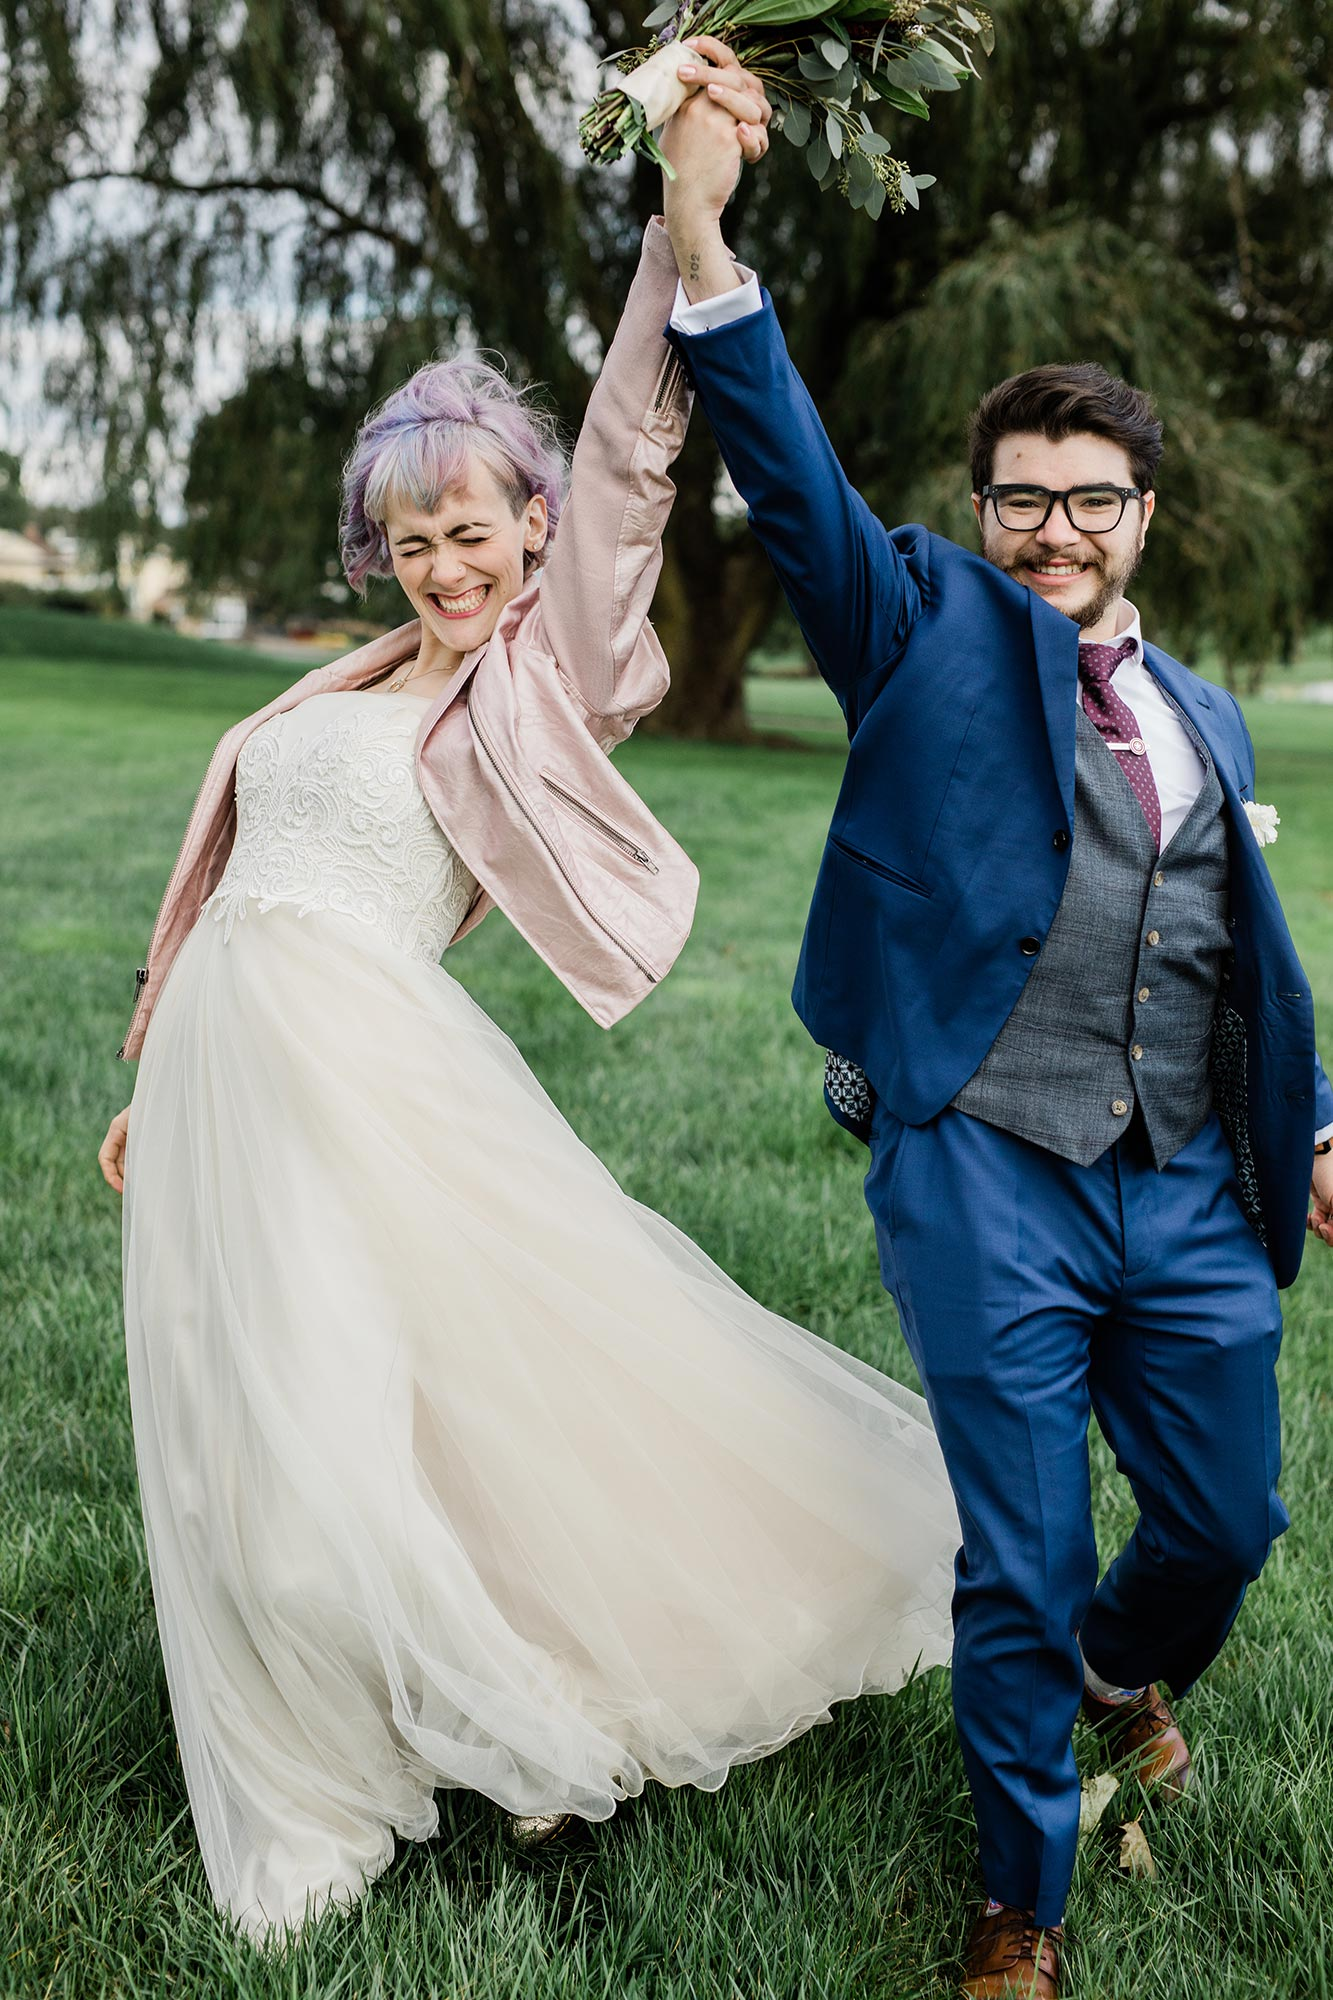 Chic Queer Wedding in West Chester Pennsylvania showing couple holding hands in air Judson Rappaport Photography